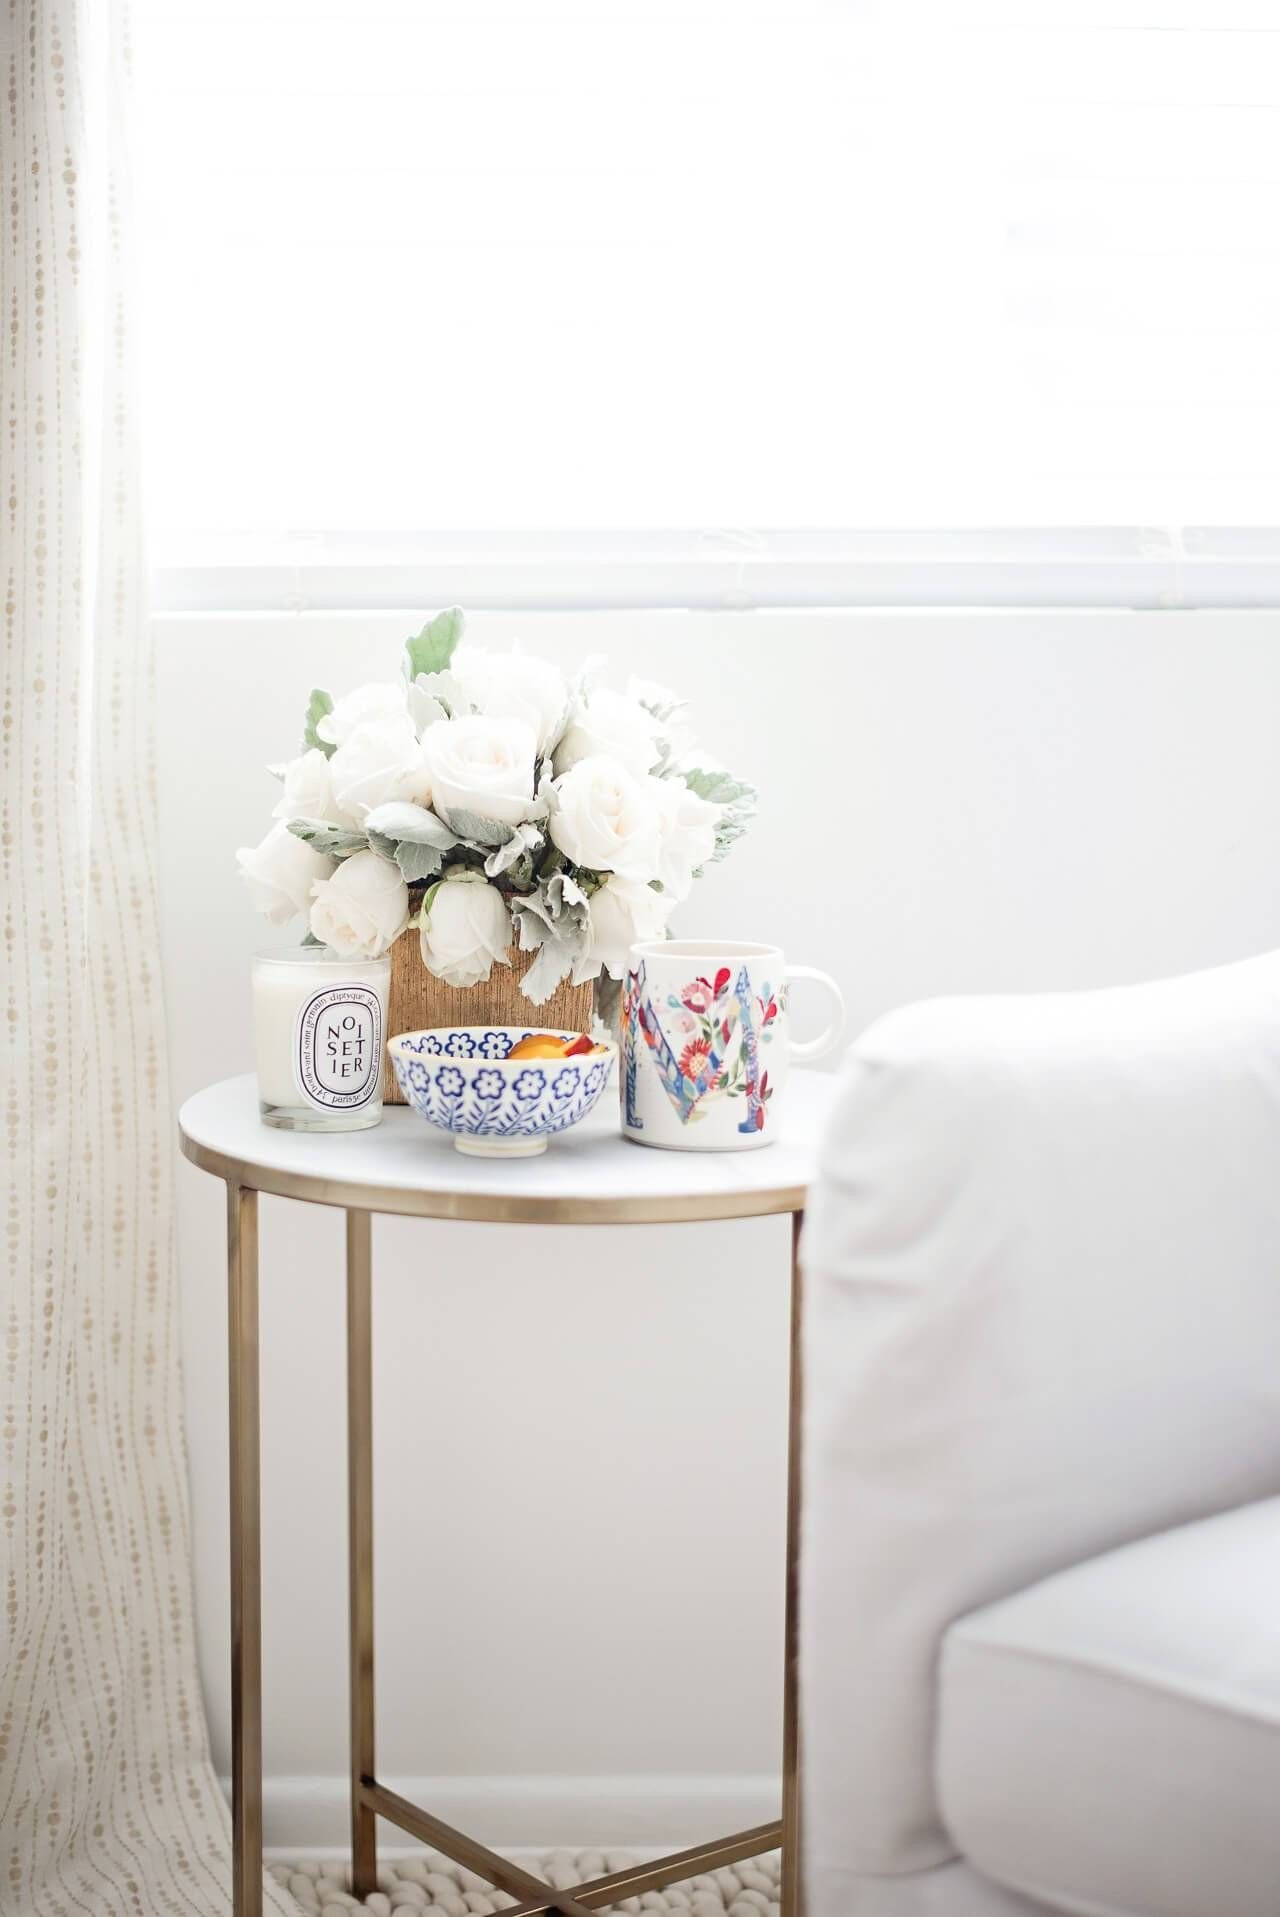 Living Room Side Table Decor Quiet Mornings at Home Marble Side Table with Flowers and